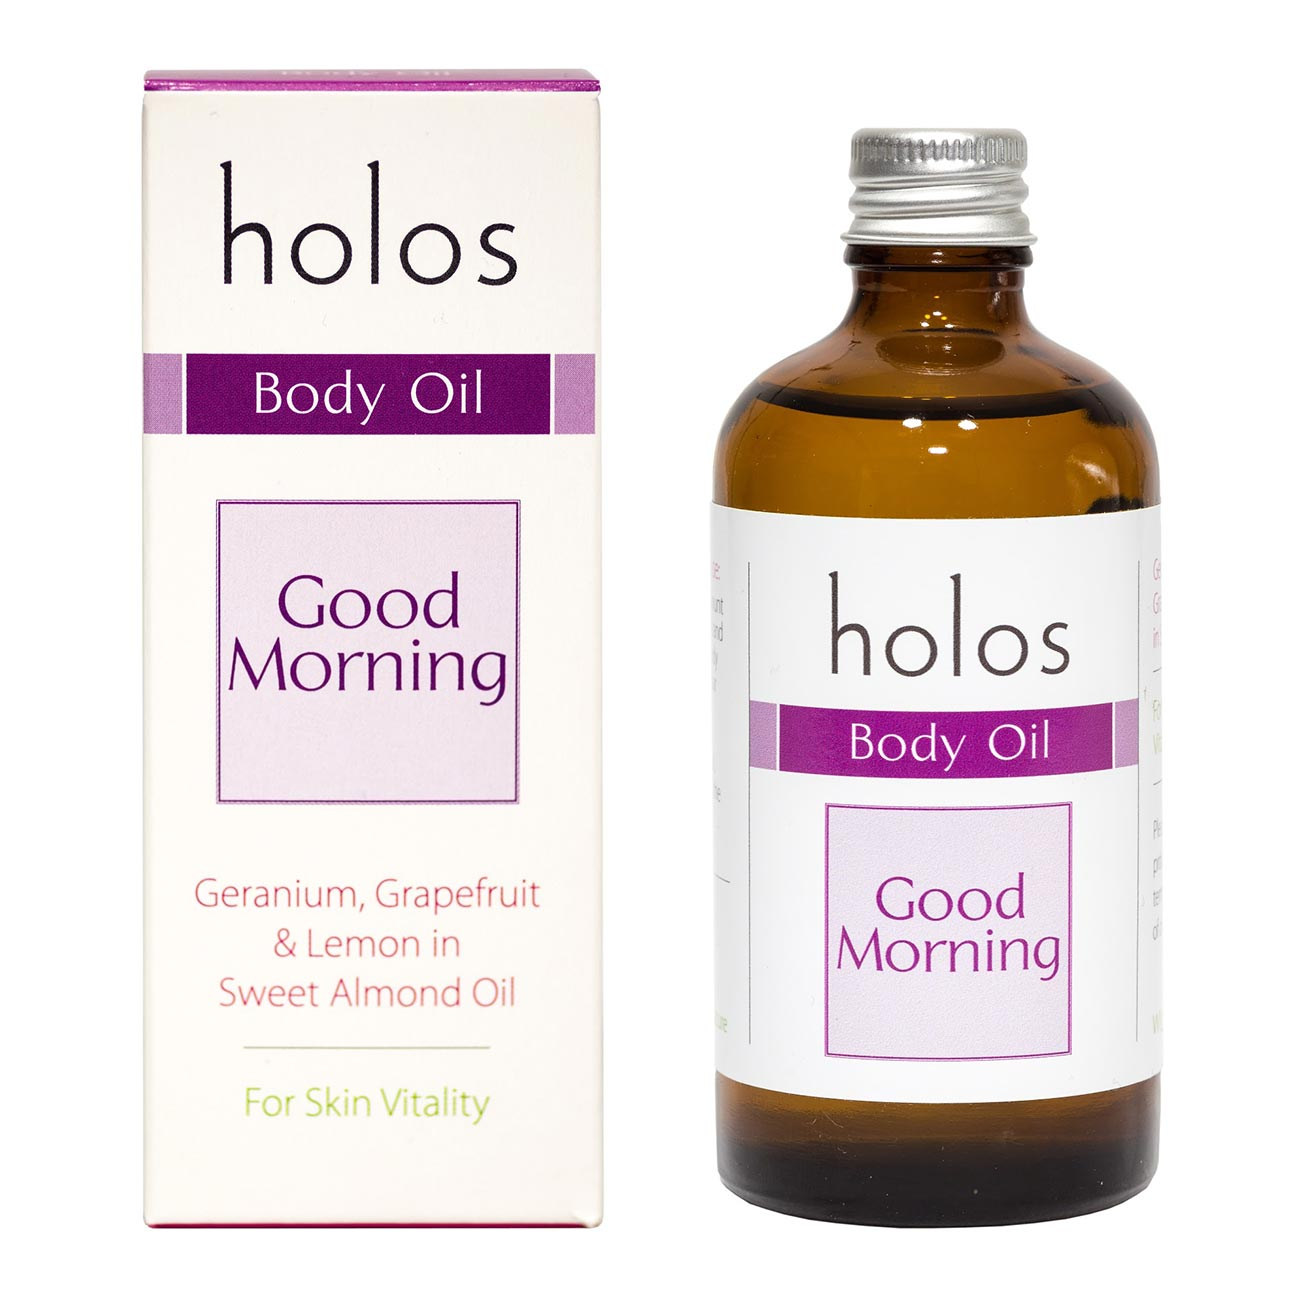 Holos Good Morning Body Oil 100ml